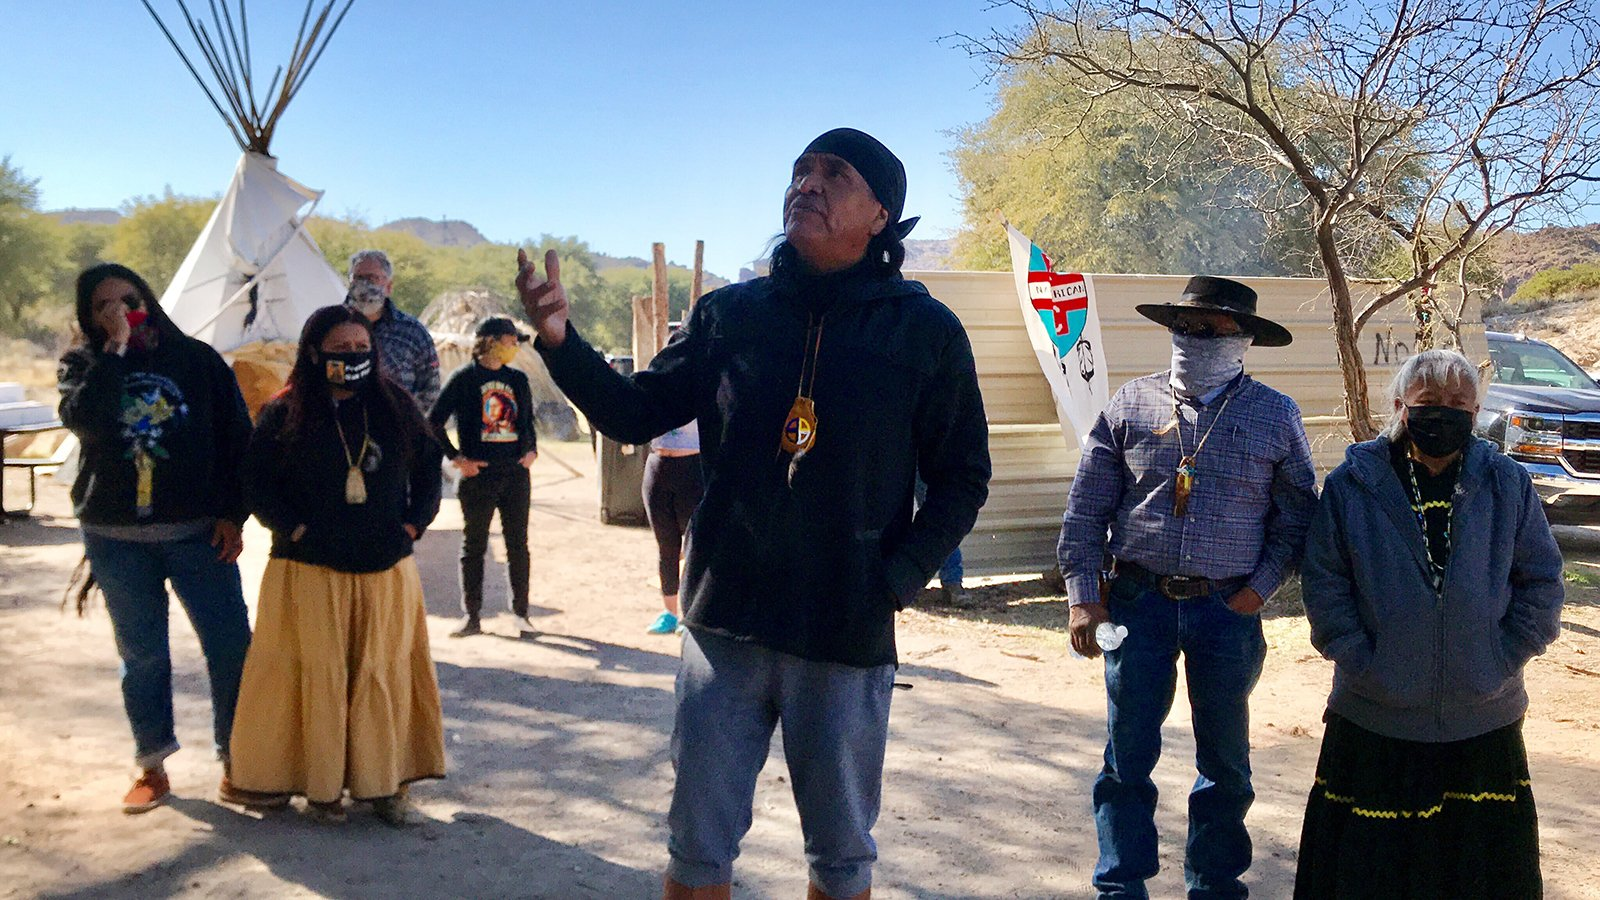 Wendsler Nosie Sr., leader of Apache Stronghold, addresses supporters of Oak Flat, including people from other Native American groups and runners who participated in a protest run in support for Oak Flat, Saturday, Feb. 27, 2021, in Oak Flat, Arizona. RNS photo by Alejandra Molina